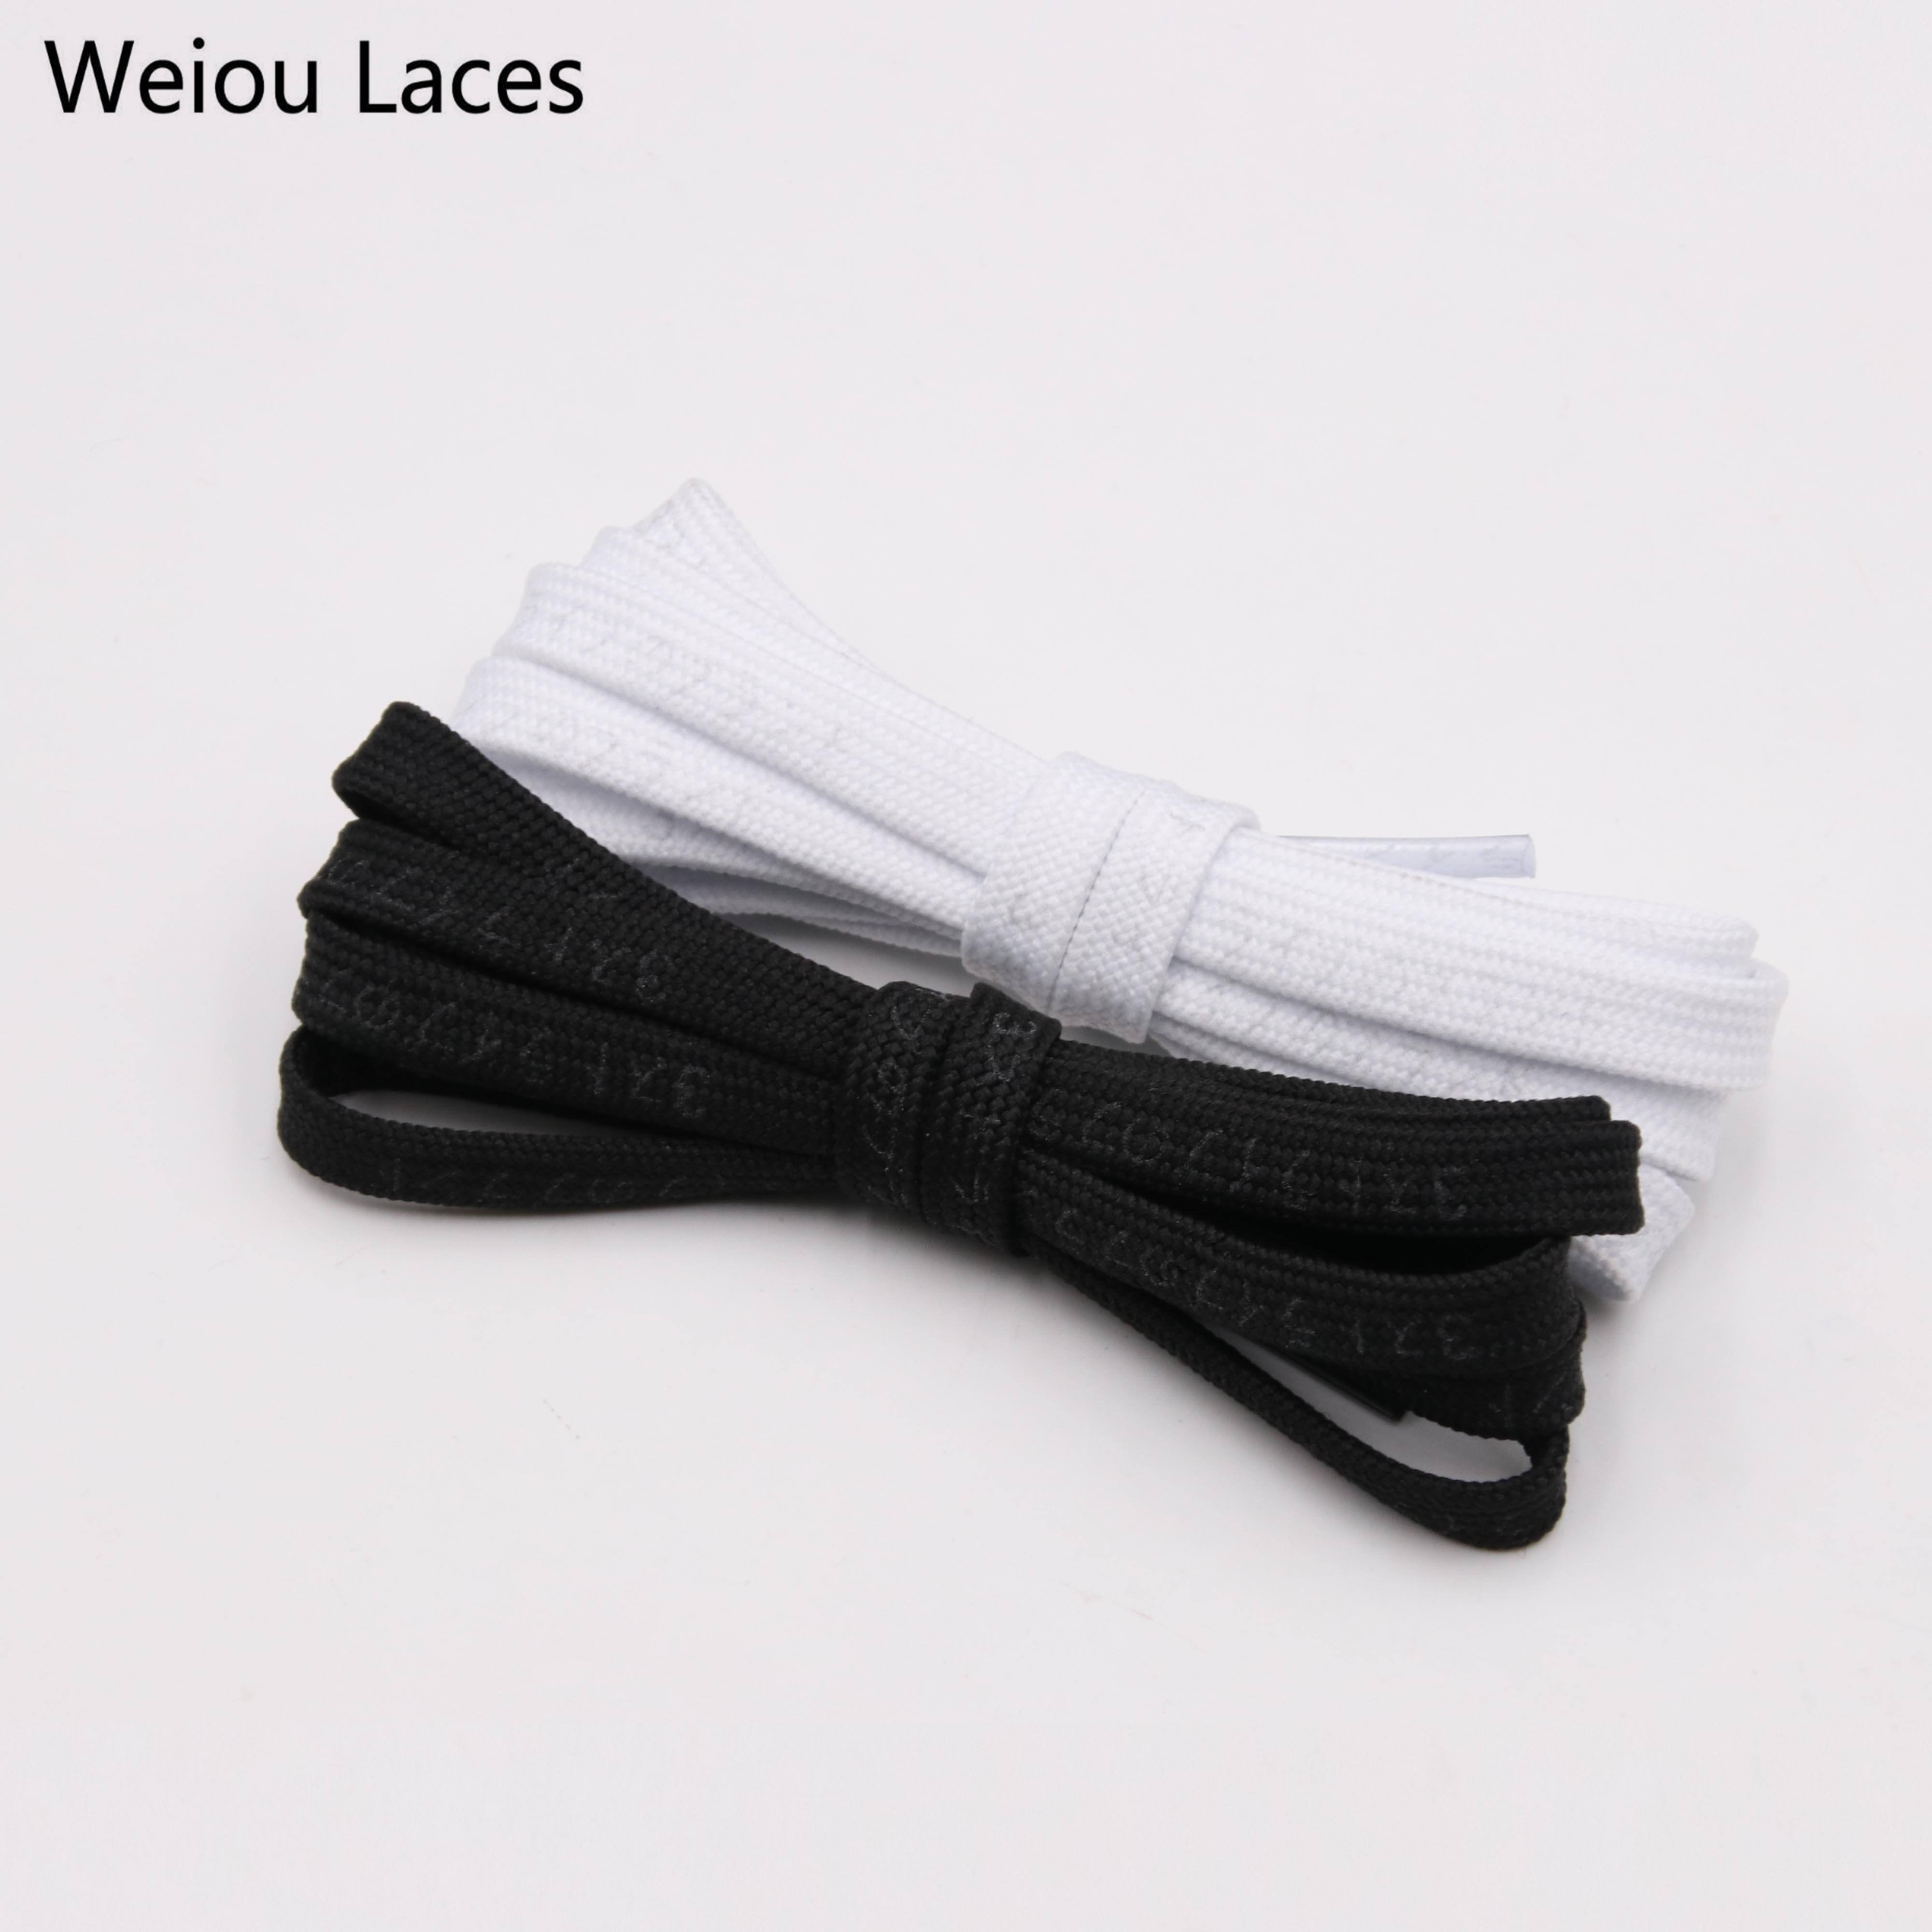 Weiou 7mm Flat Nice Letter Printing 3M Reflective Japanese Katakana Kanji Shoelaces Plastic Tips Printed Laces For Sport Shoes